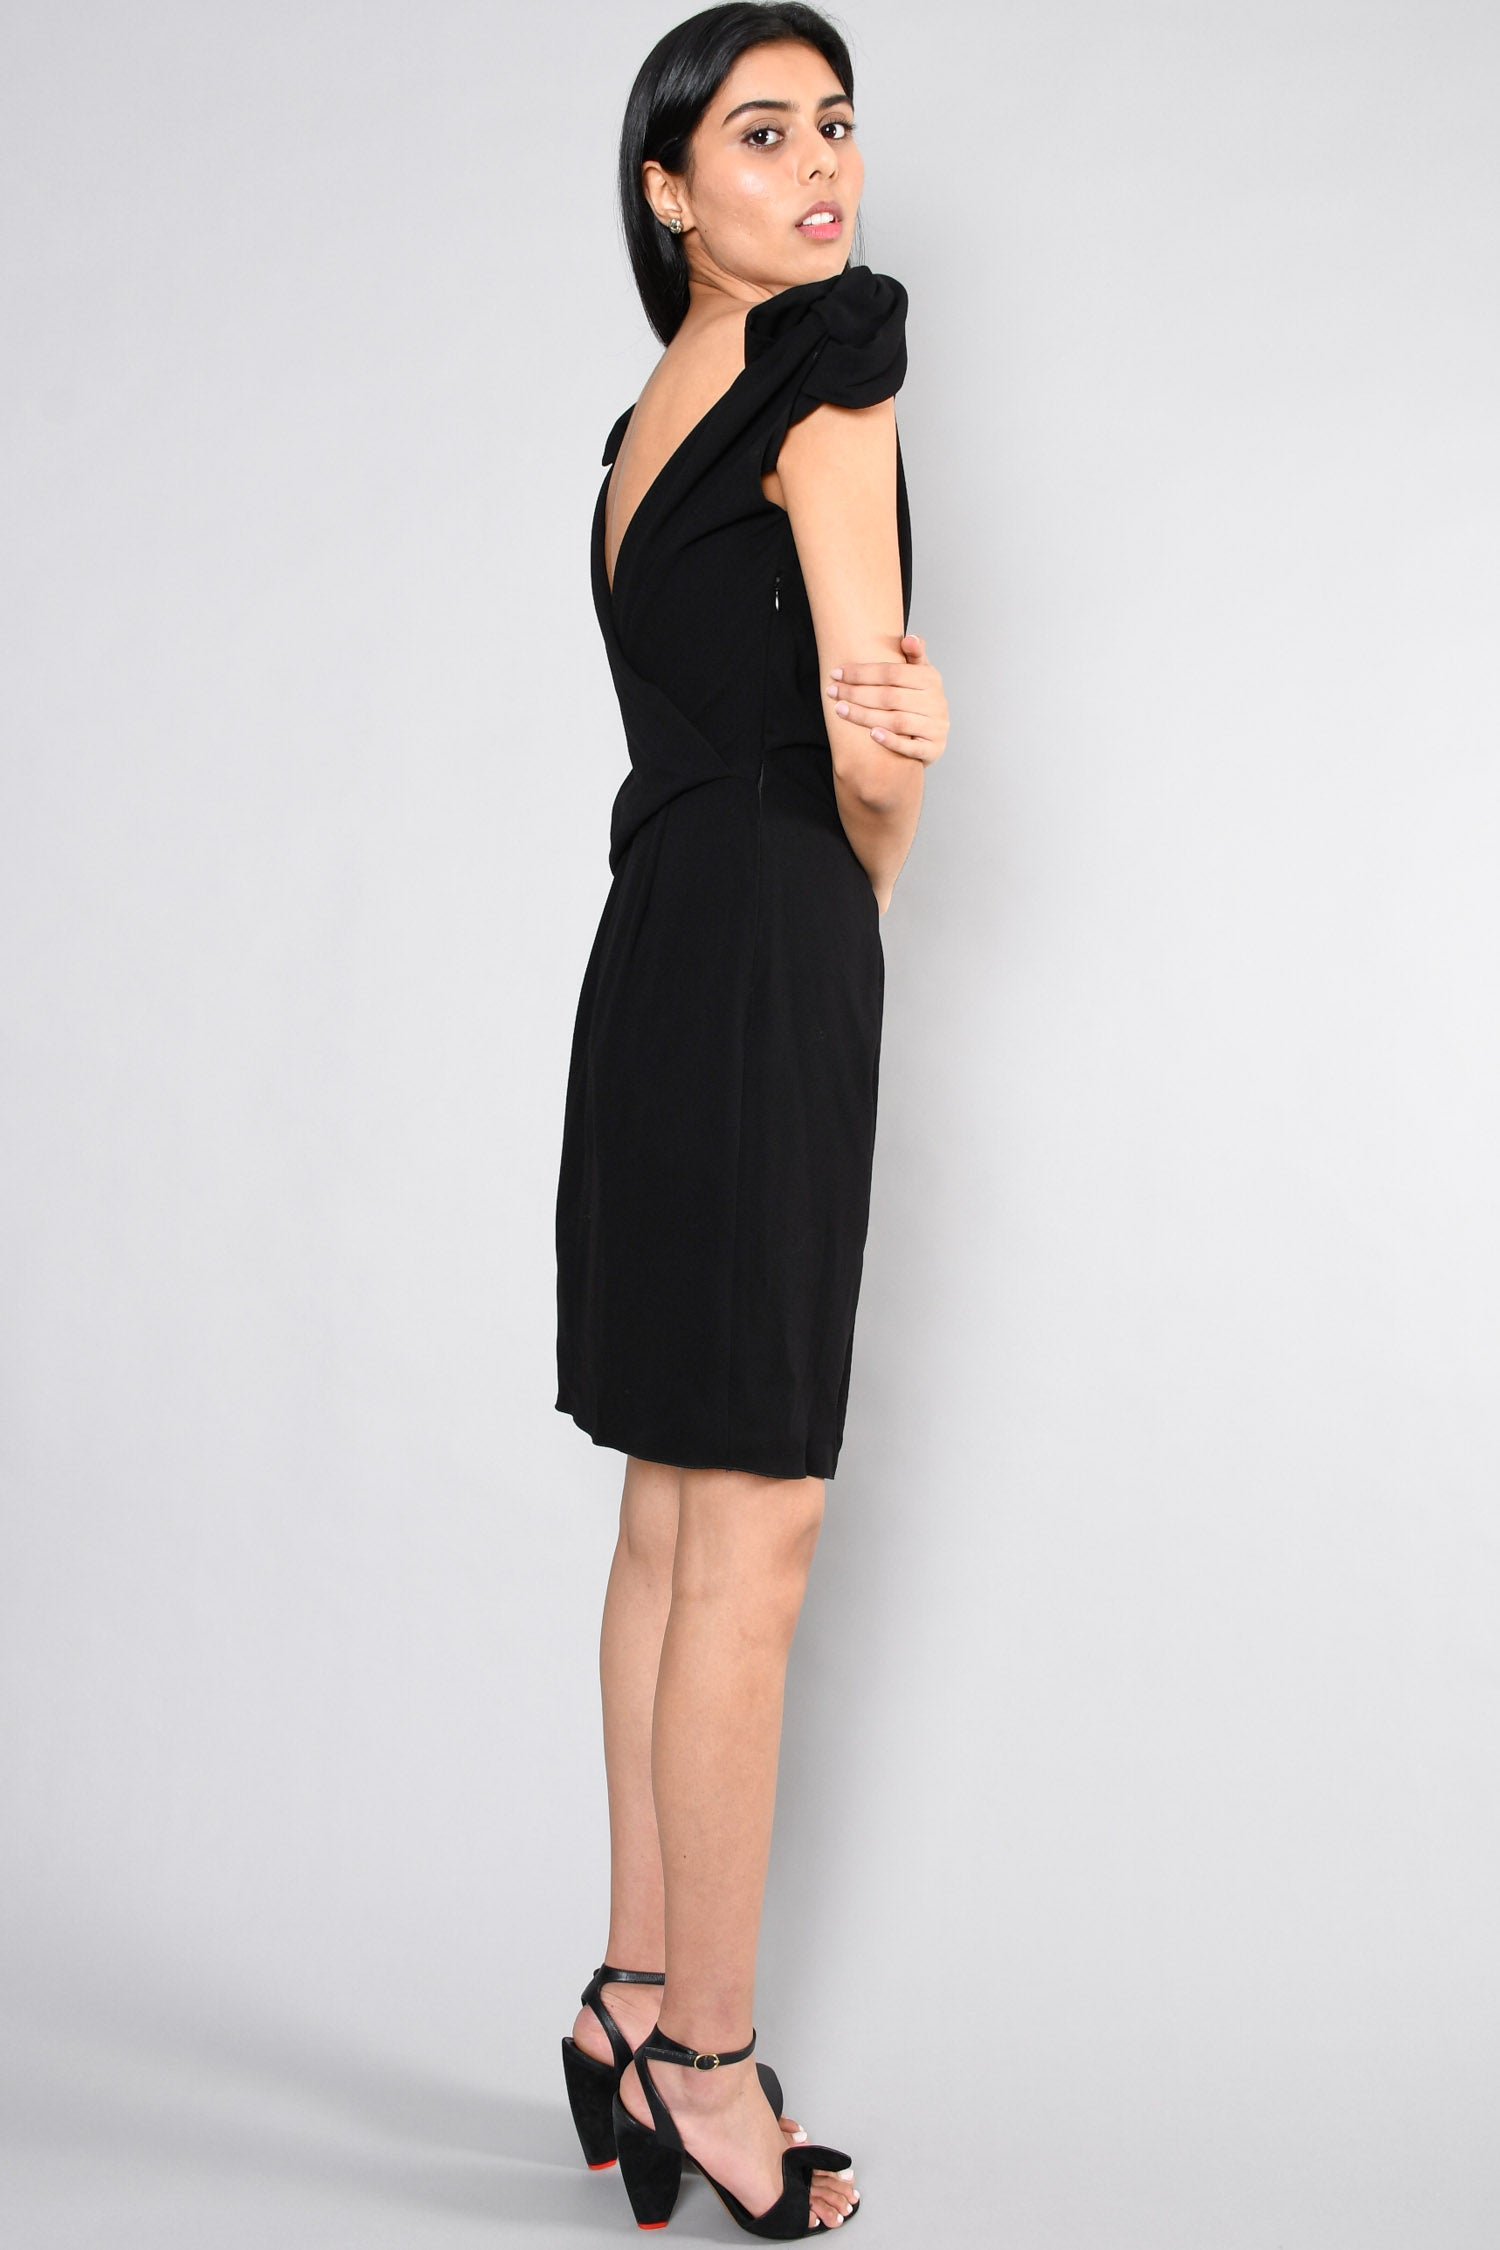 Prada Black Reversible Dress Size 38